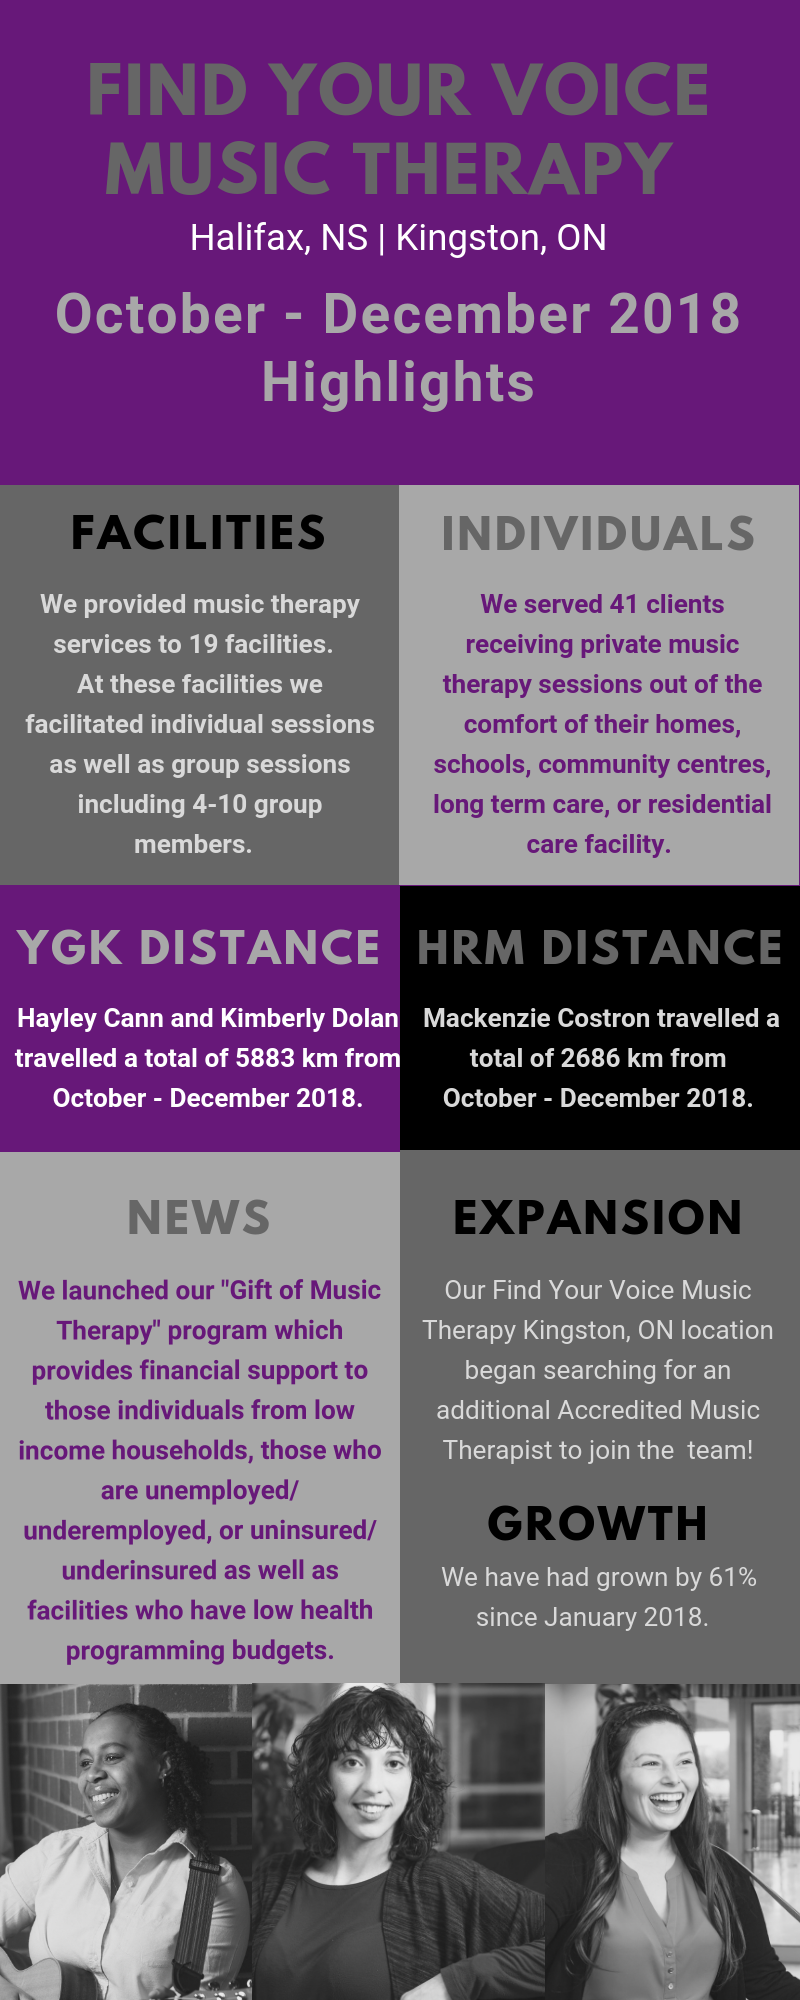 Find Your Voice Music Therapy. Kingston. Ontario. Halifax. Nova Scotia. October - December 2018 Highlights.